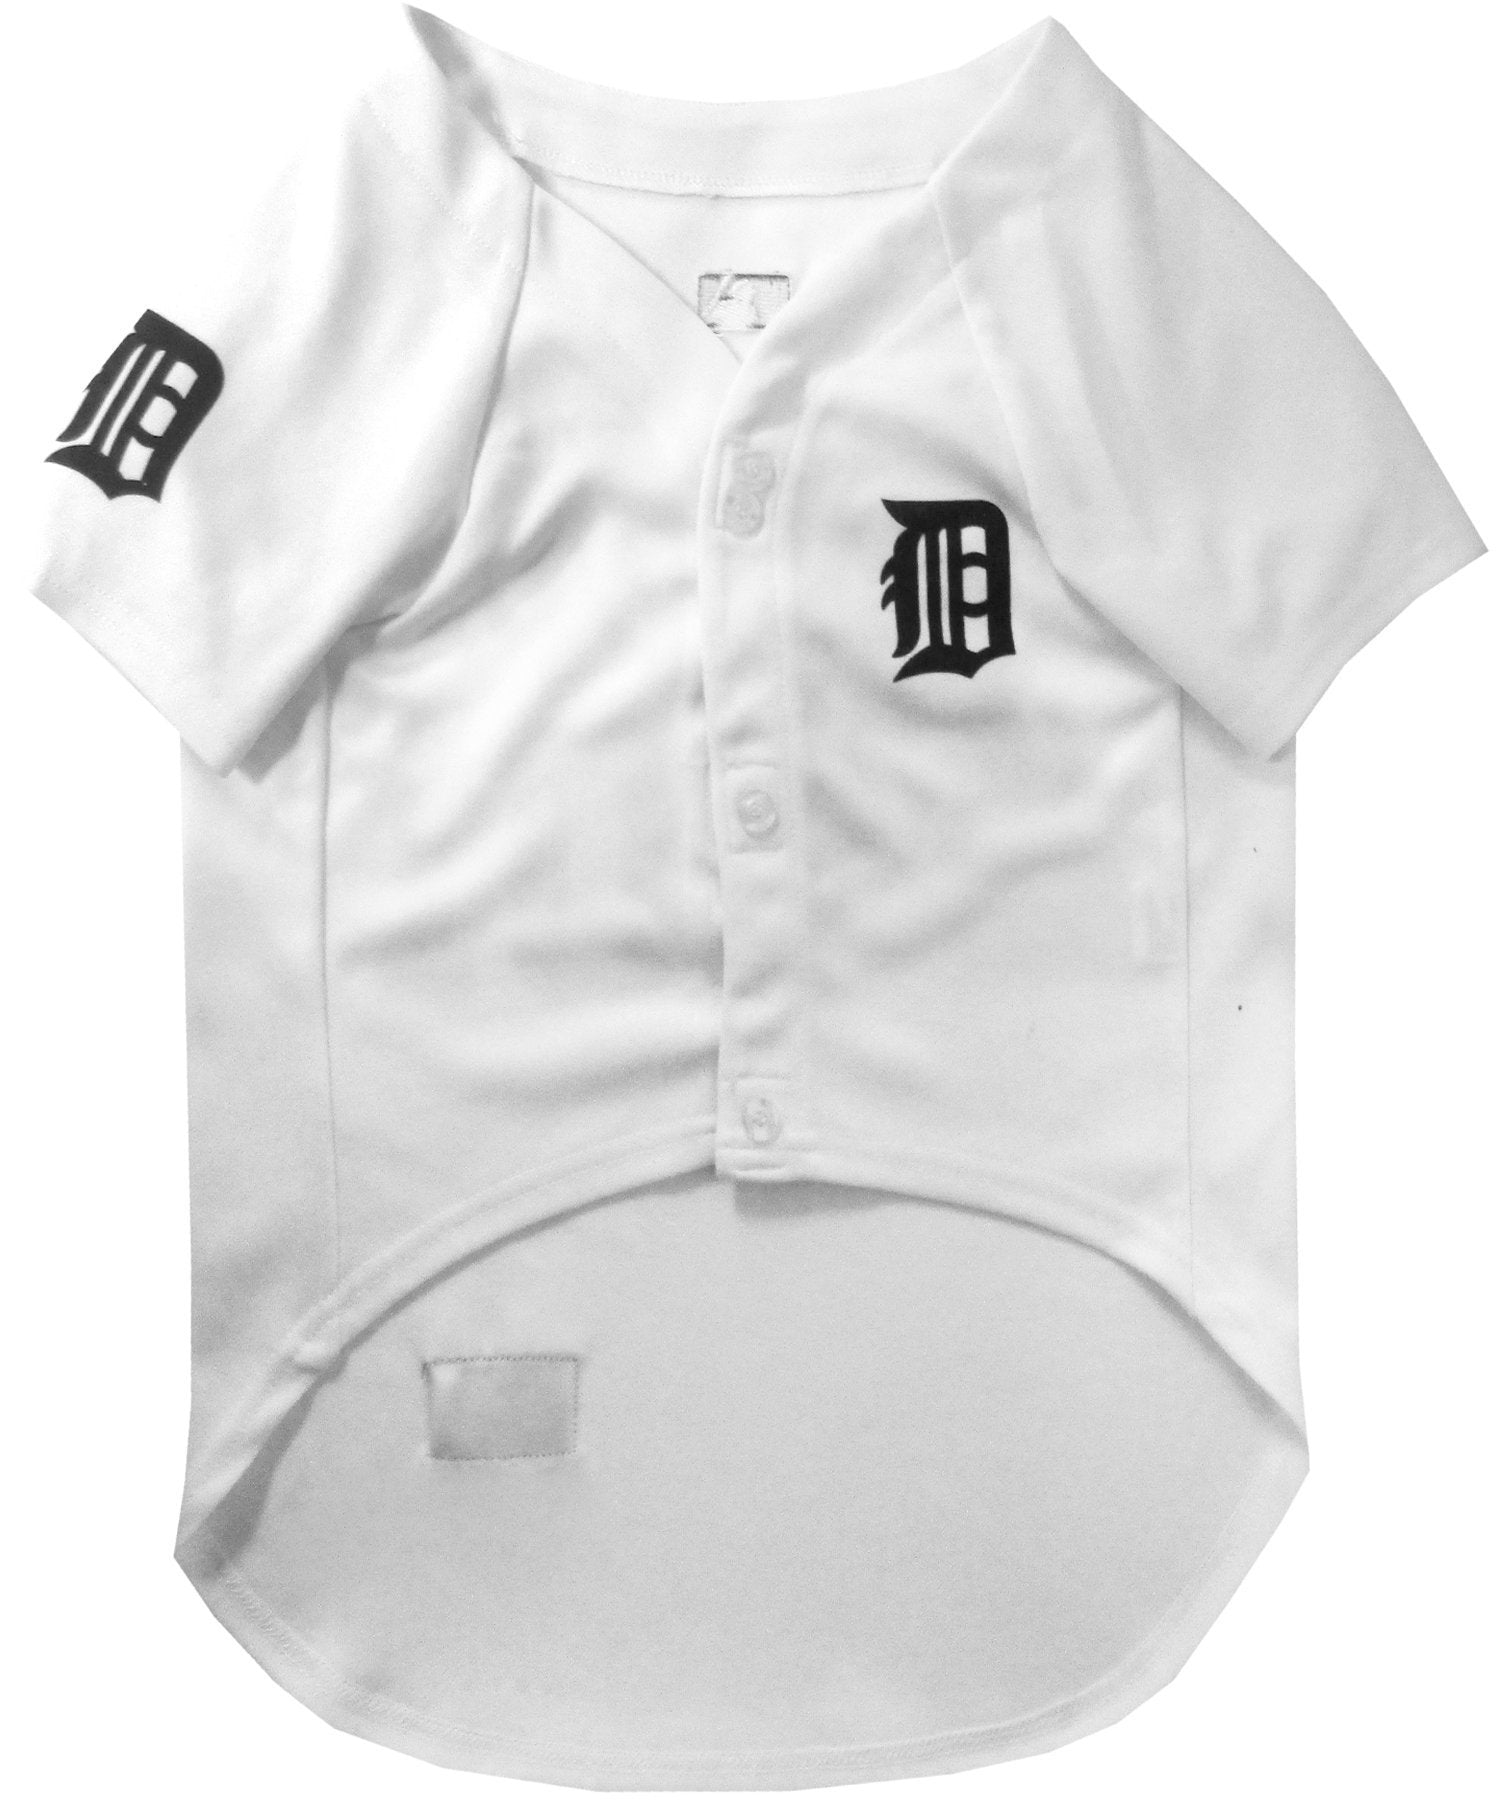 Detoit Tigers Puppy Dog Baseball Jersey - Jersey Champs - Custom Basketball, Baseball, Football & Hockey Jerseys